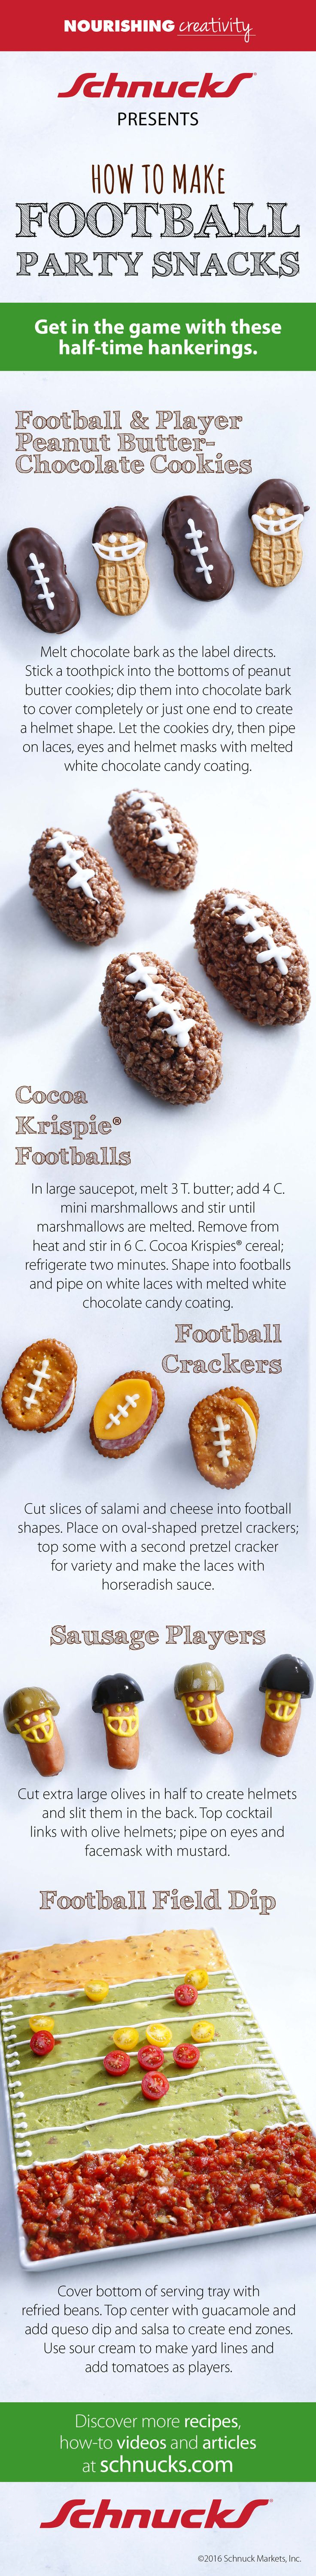 Ready for the big game? Try these tasty #football party snacks! #Schnucks